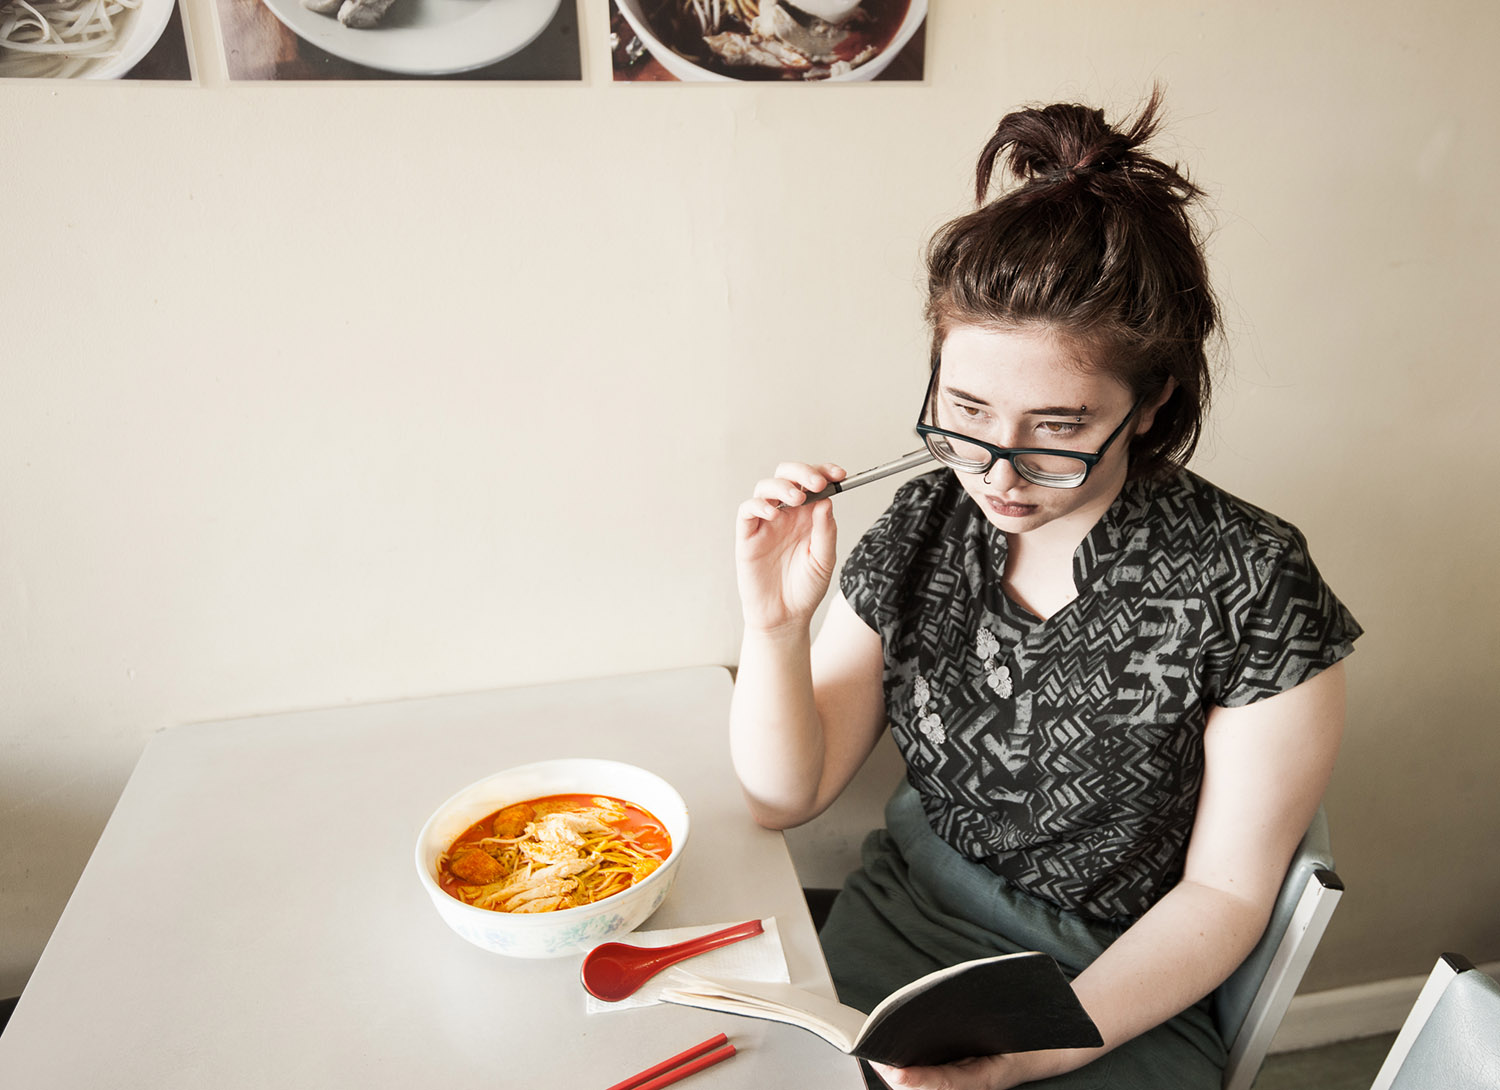 Vanessa with a bowl of laksa in front of her on the table and a very thoughtful look on her face